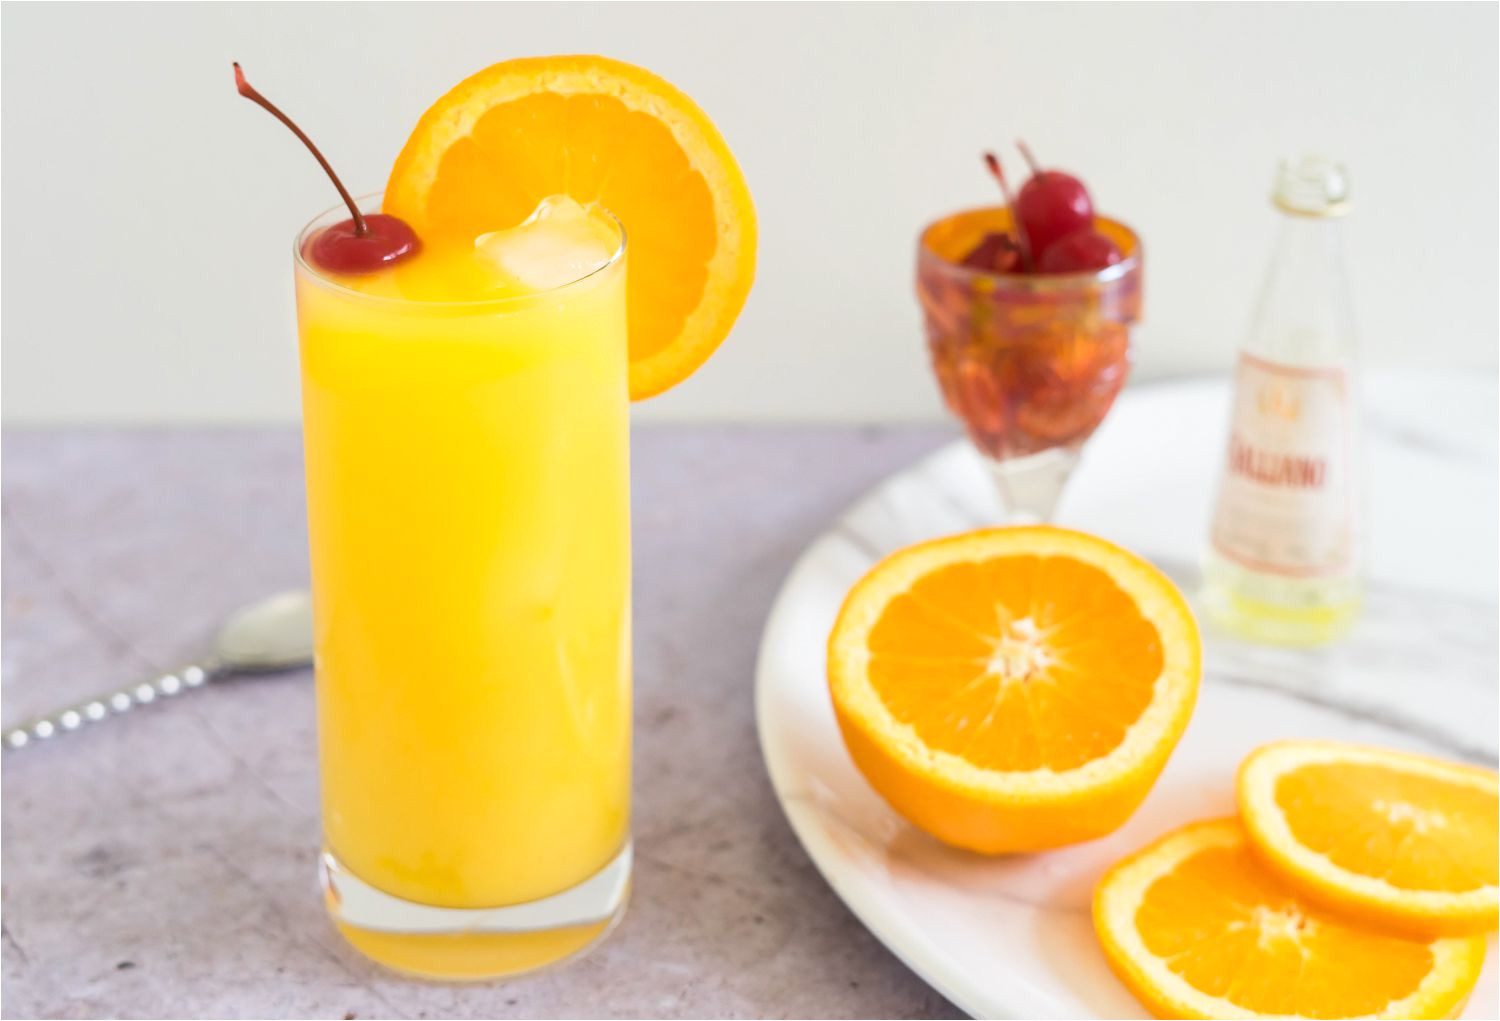 harvey wallbanger recipe 759308 final 5bc8f81746e0fb00510d2ddf jpg